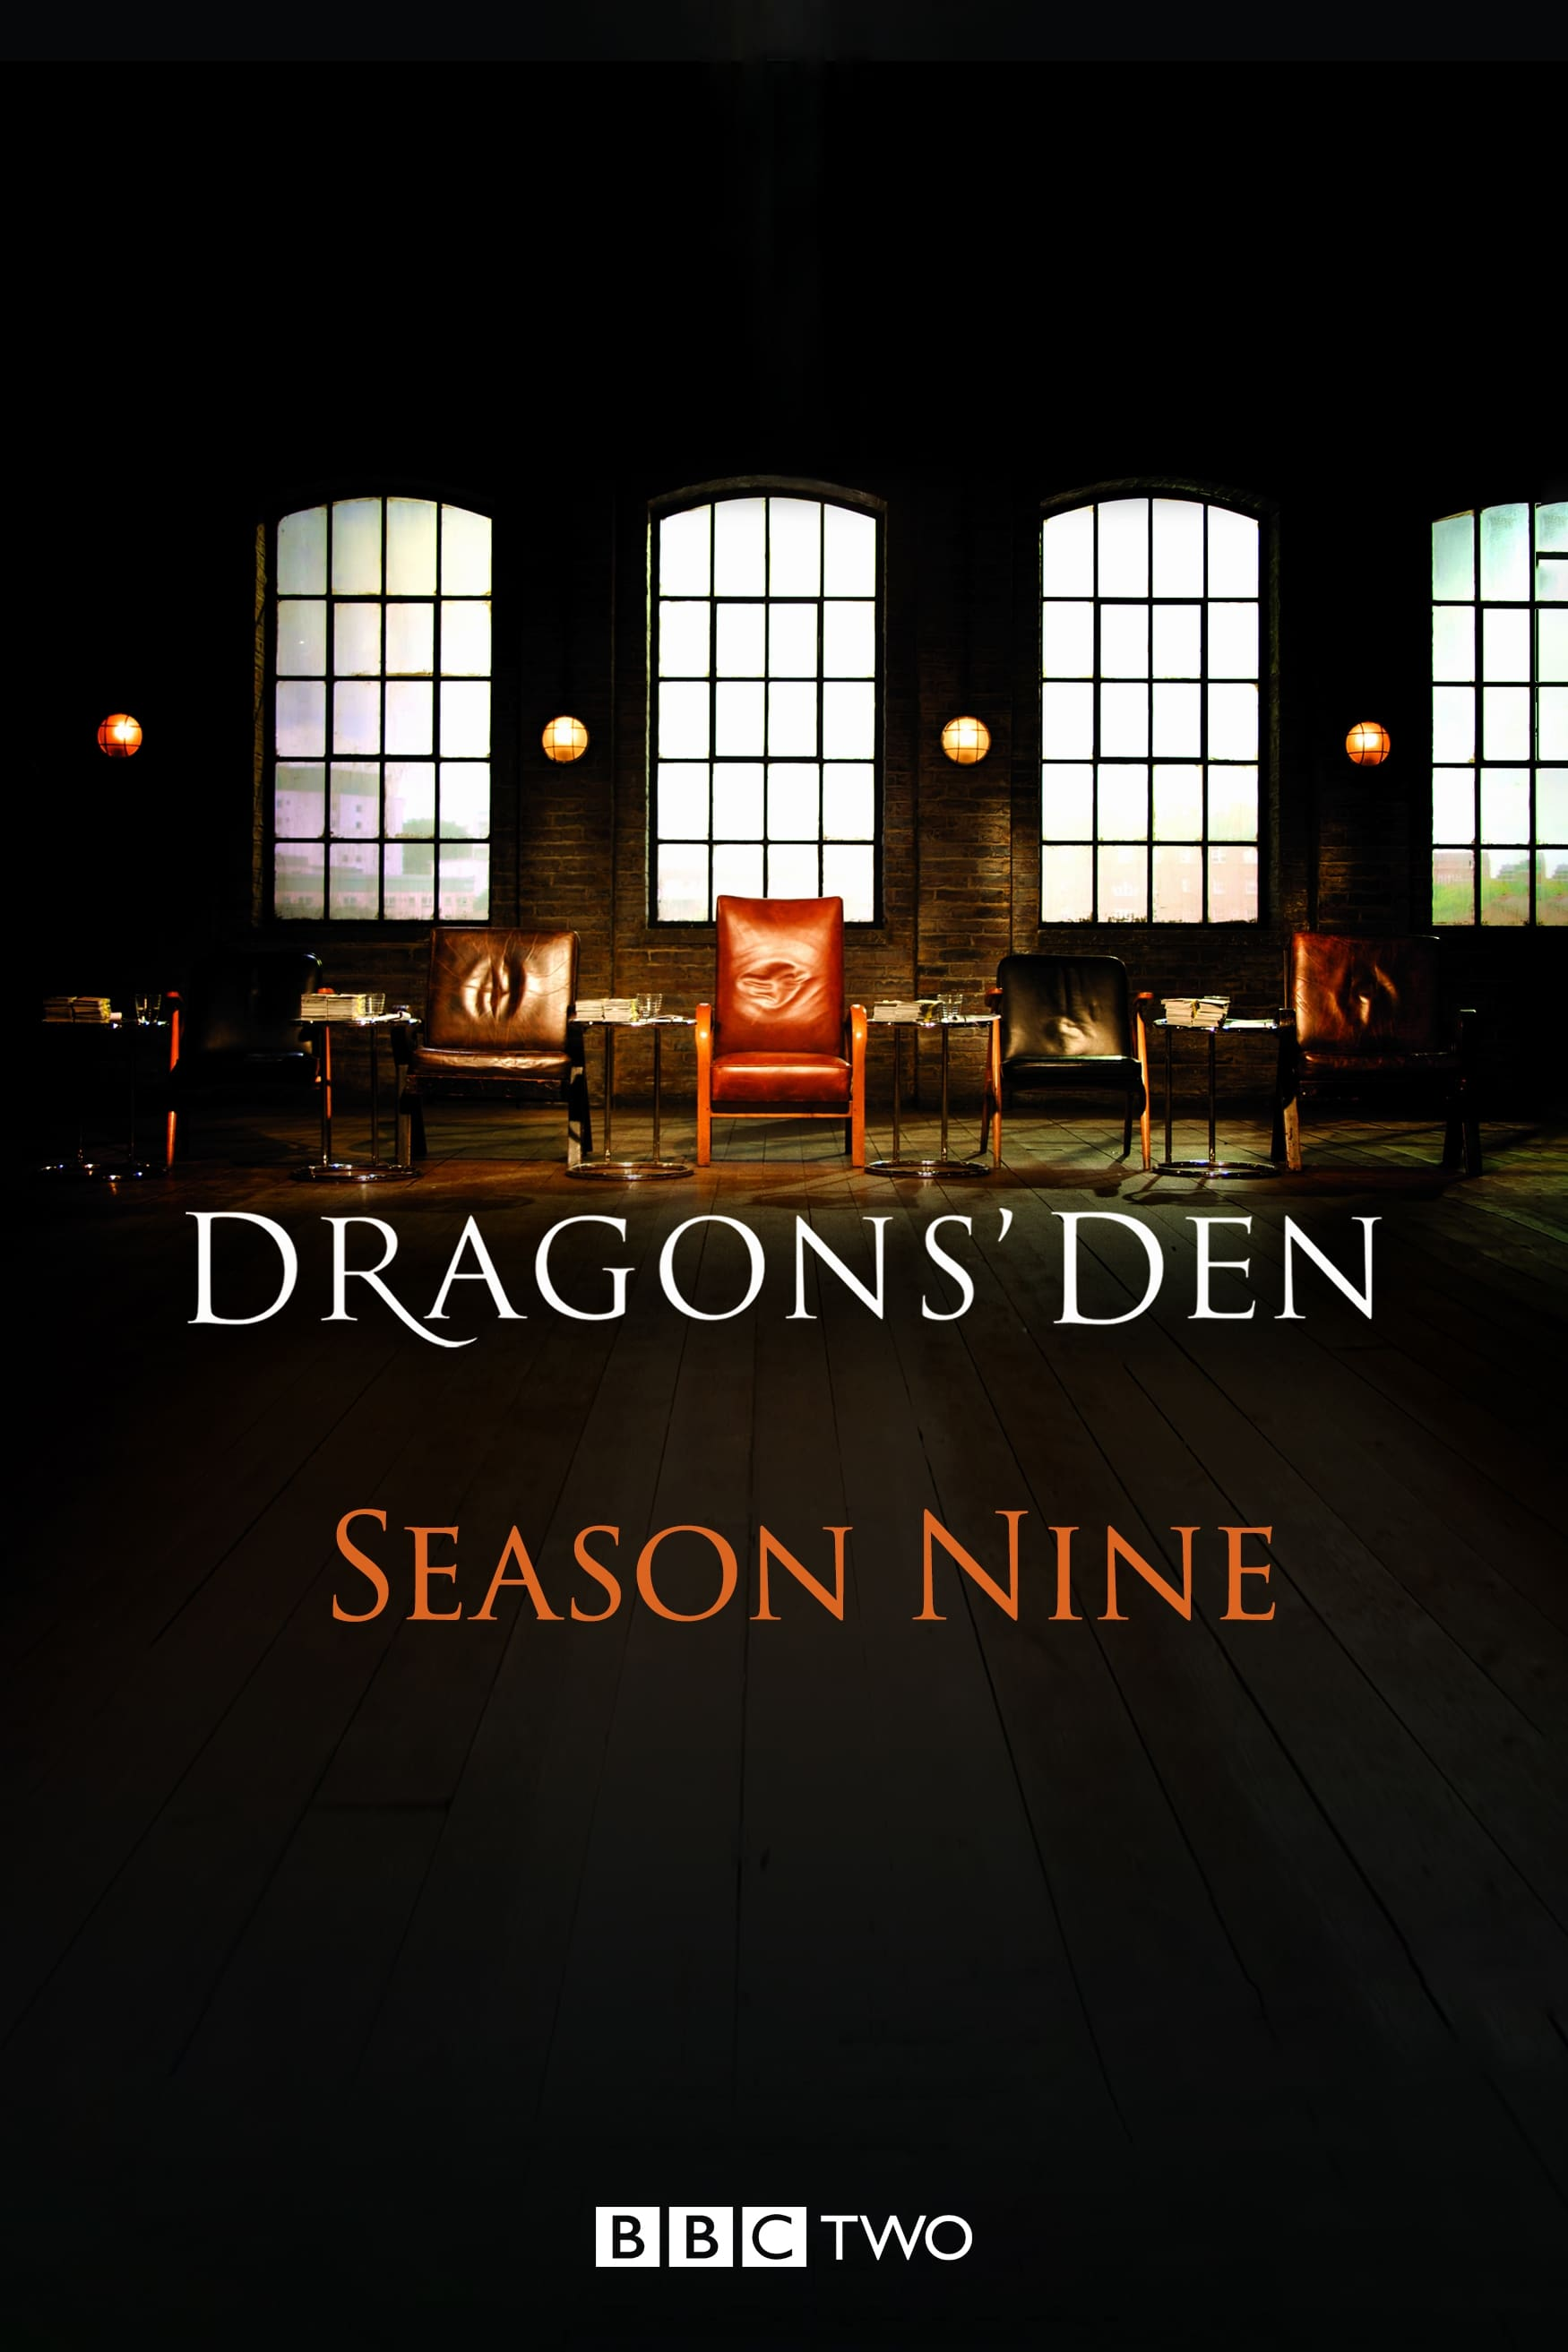 Dragons' Den Season 9